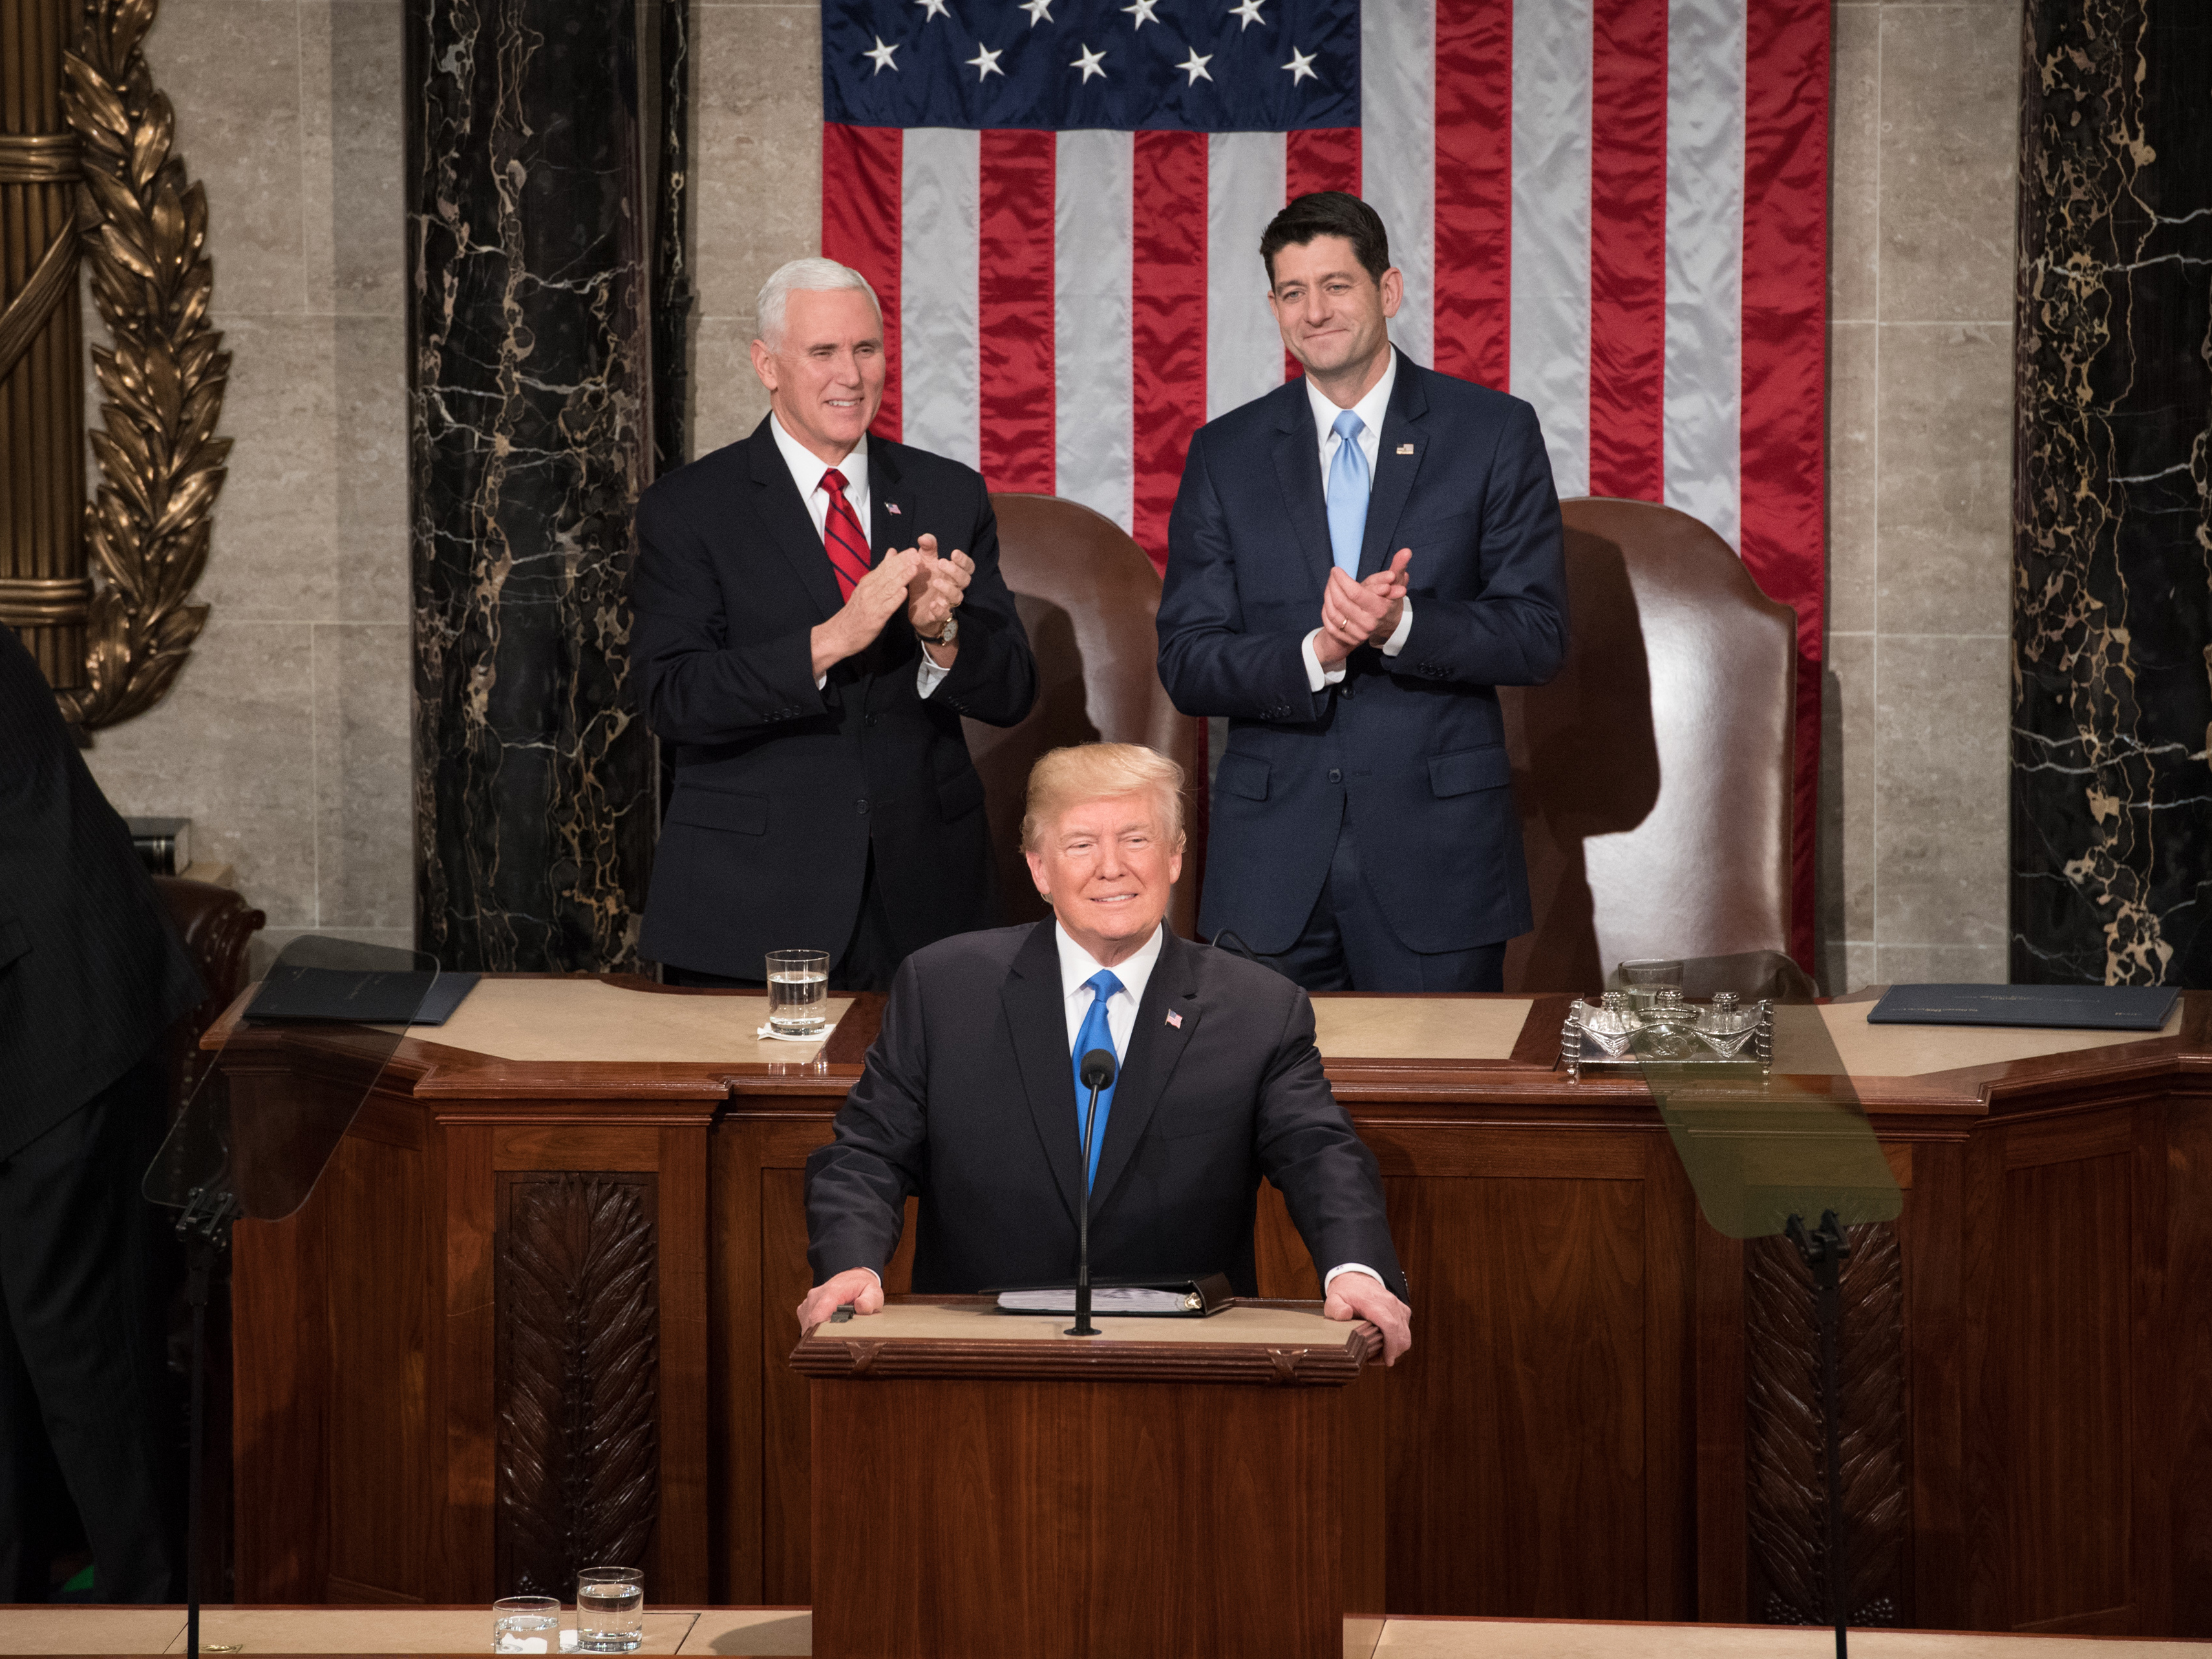 President Donald Trump flanked by Vice President Mike Pence and Speaker Paul Ryan